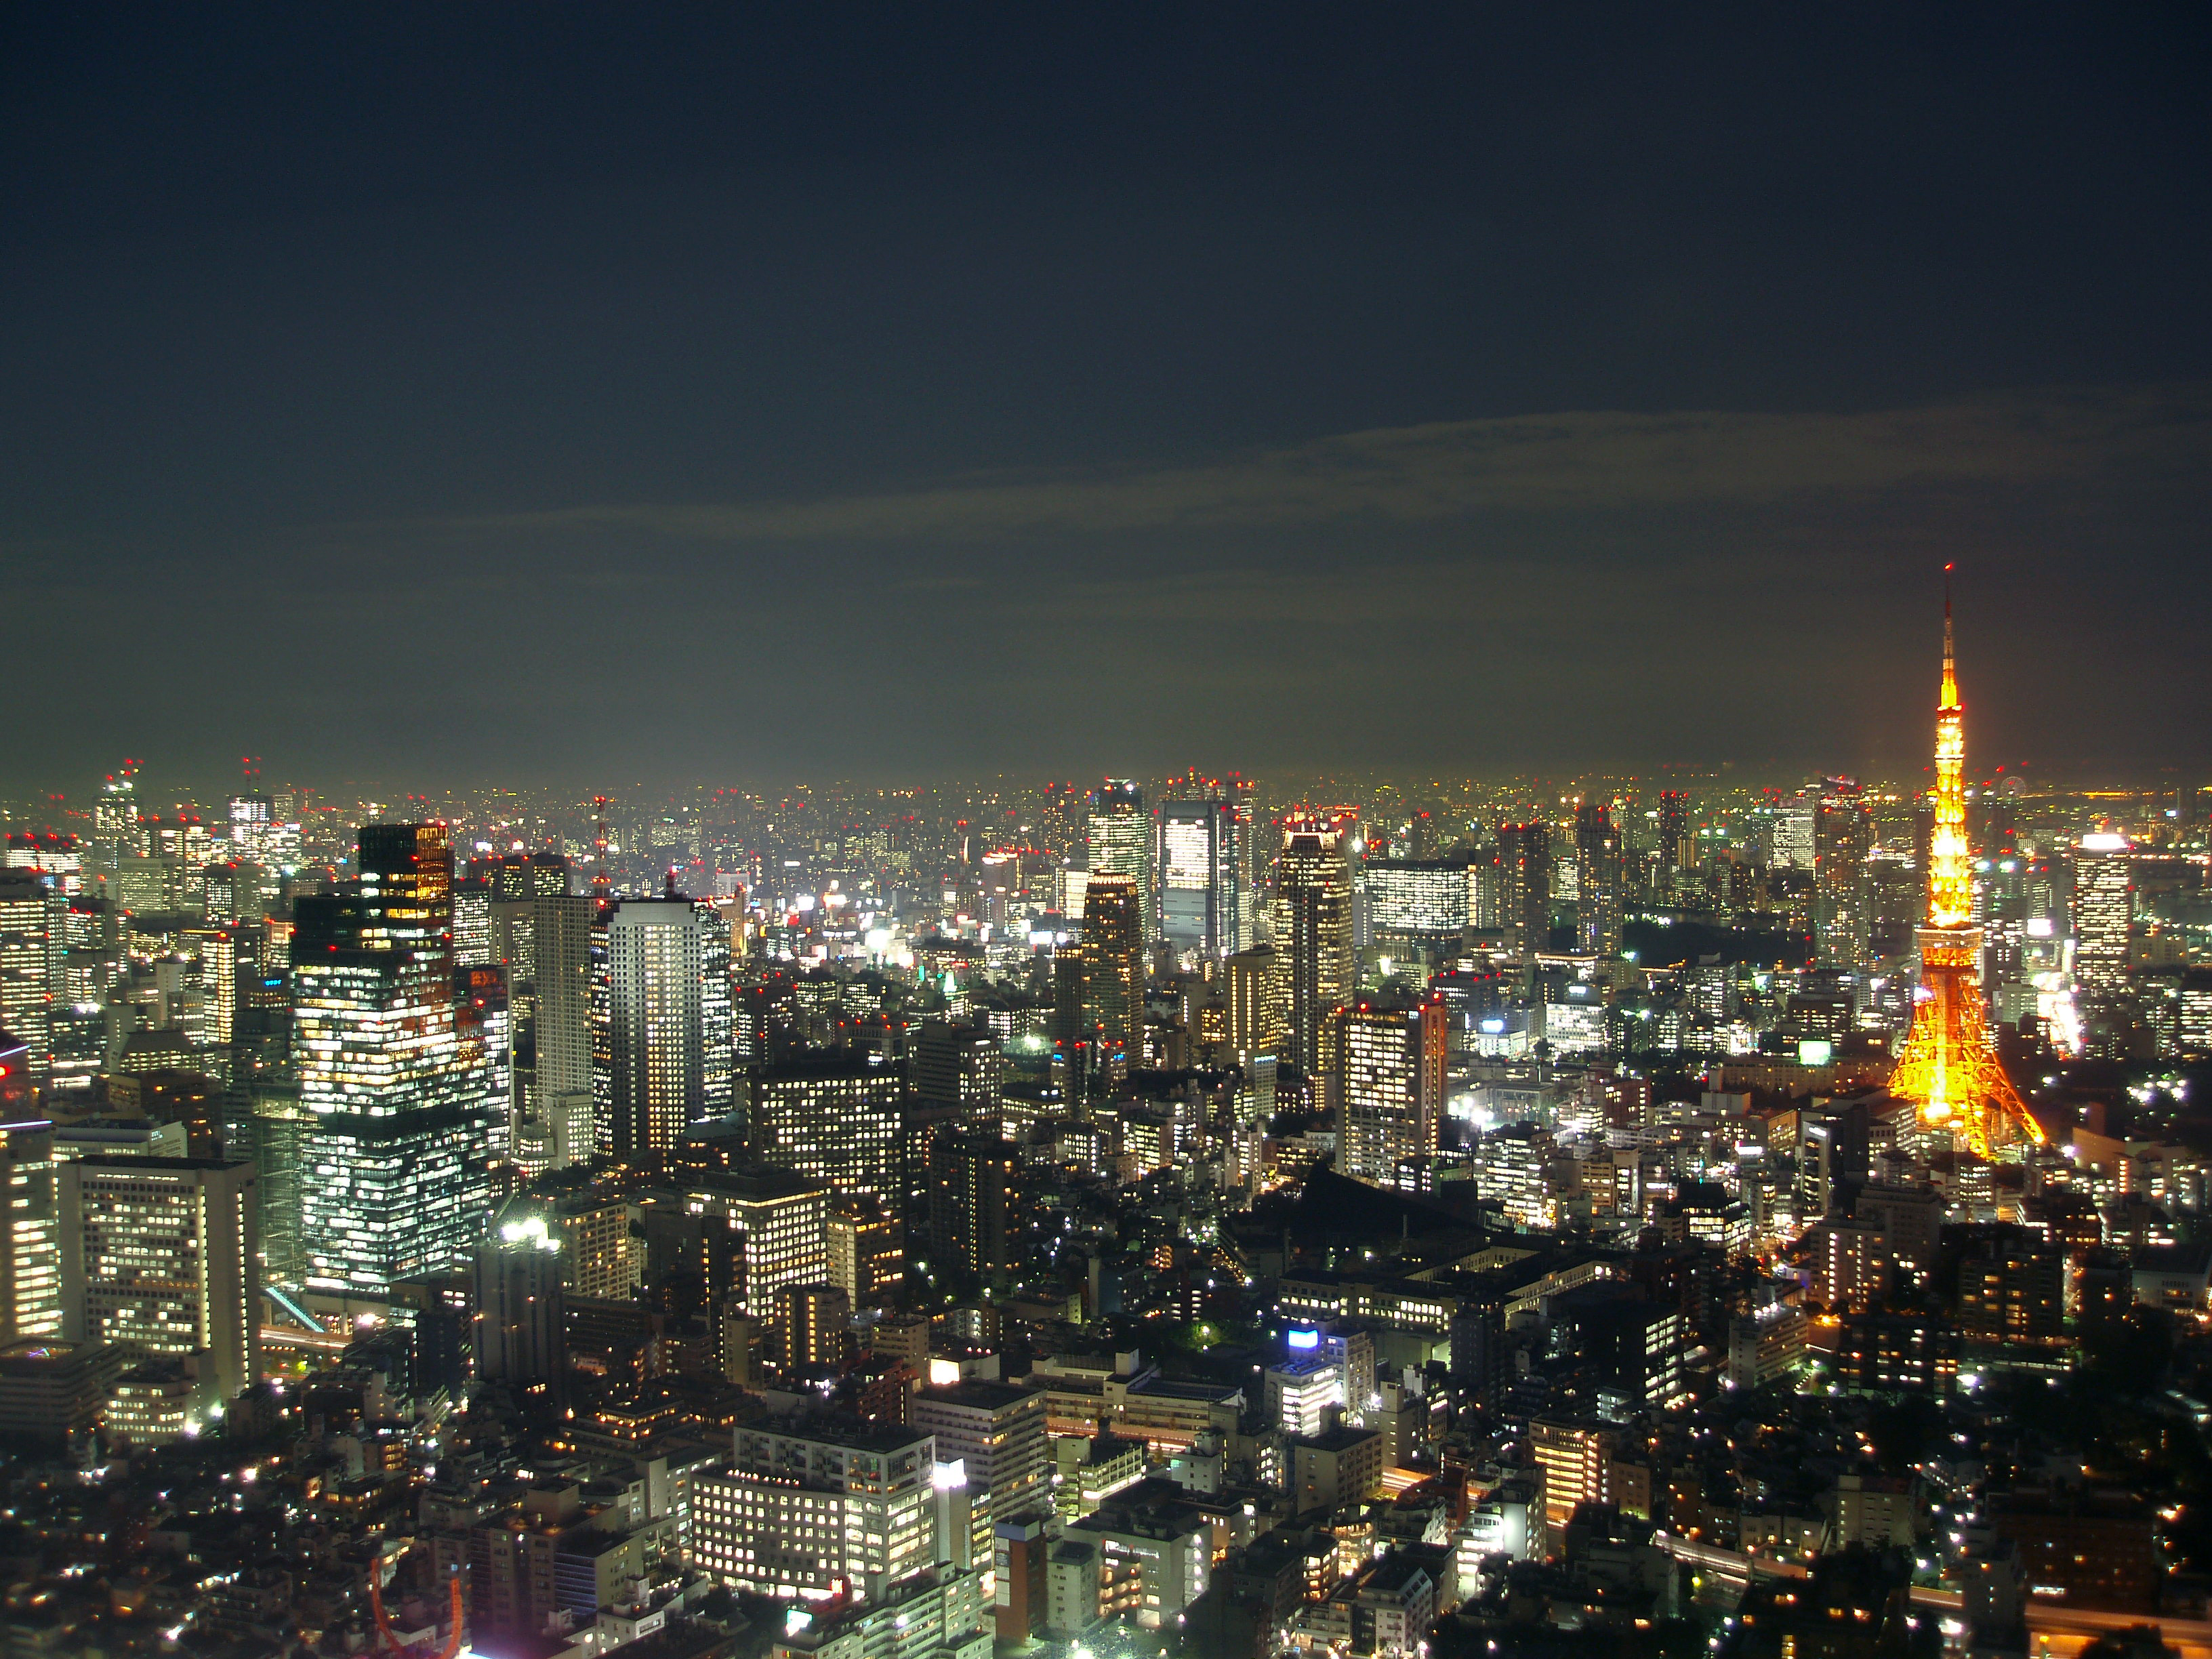 view of tokyo tv tower and surrounding areas at night the the tower illuminated